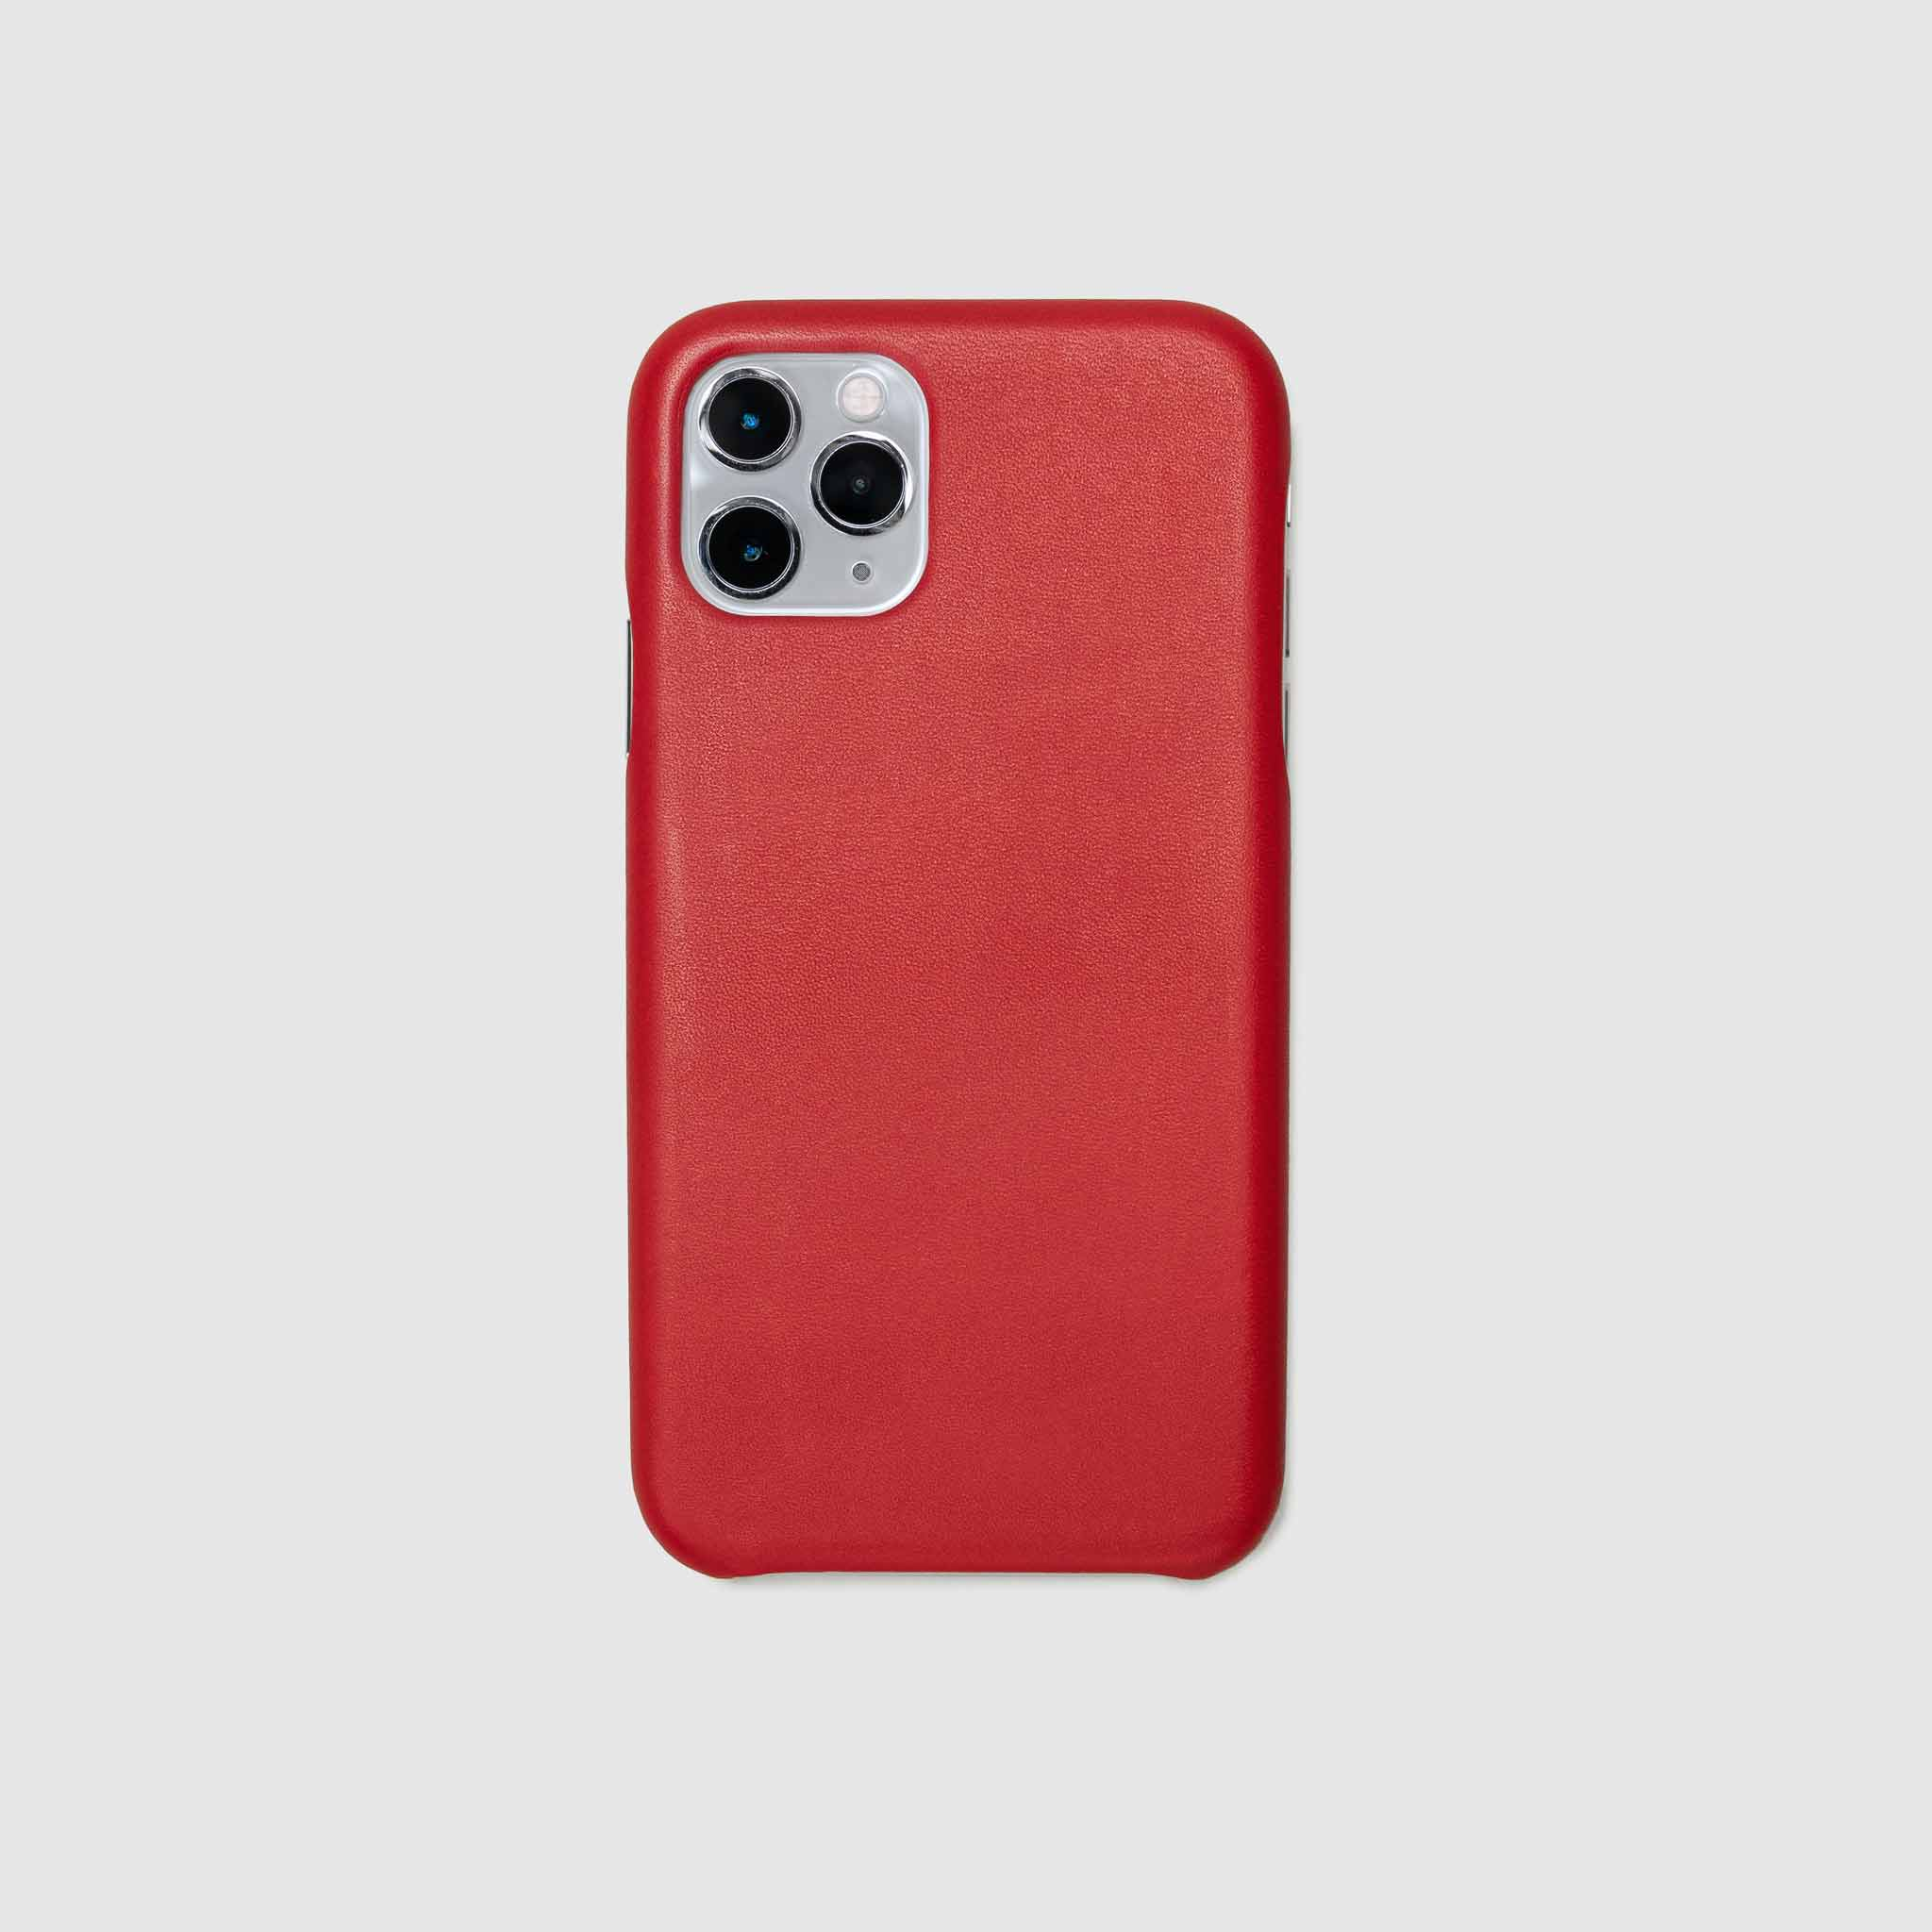 anson calder iphone case french calfskin 11 eleven pro max leather !iphone11pro-iphone11promax  *hover  _red